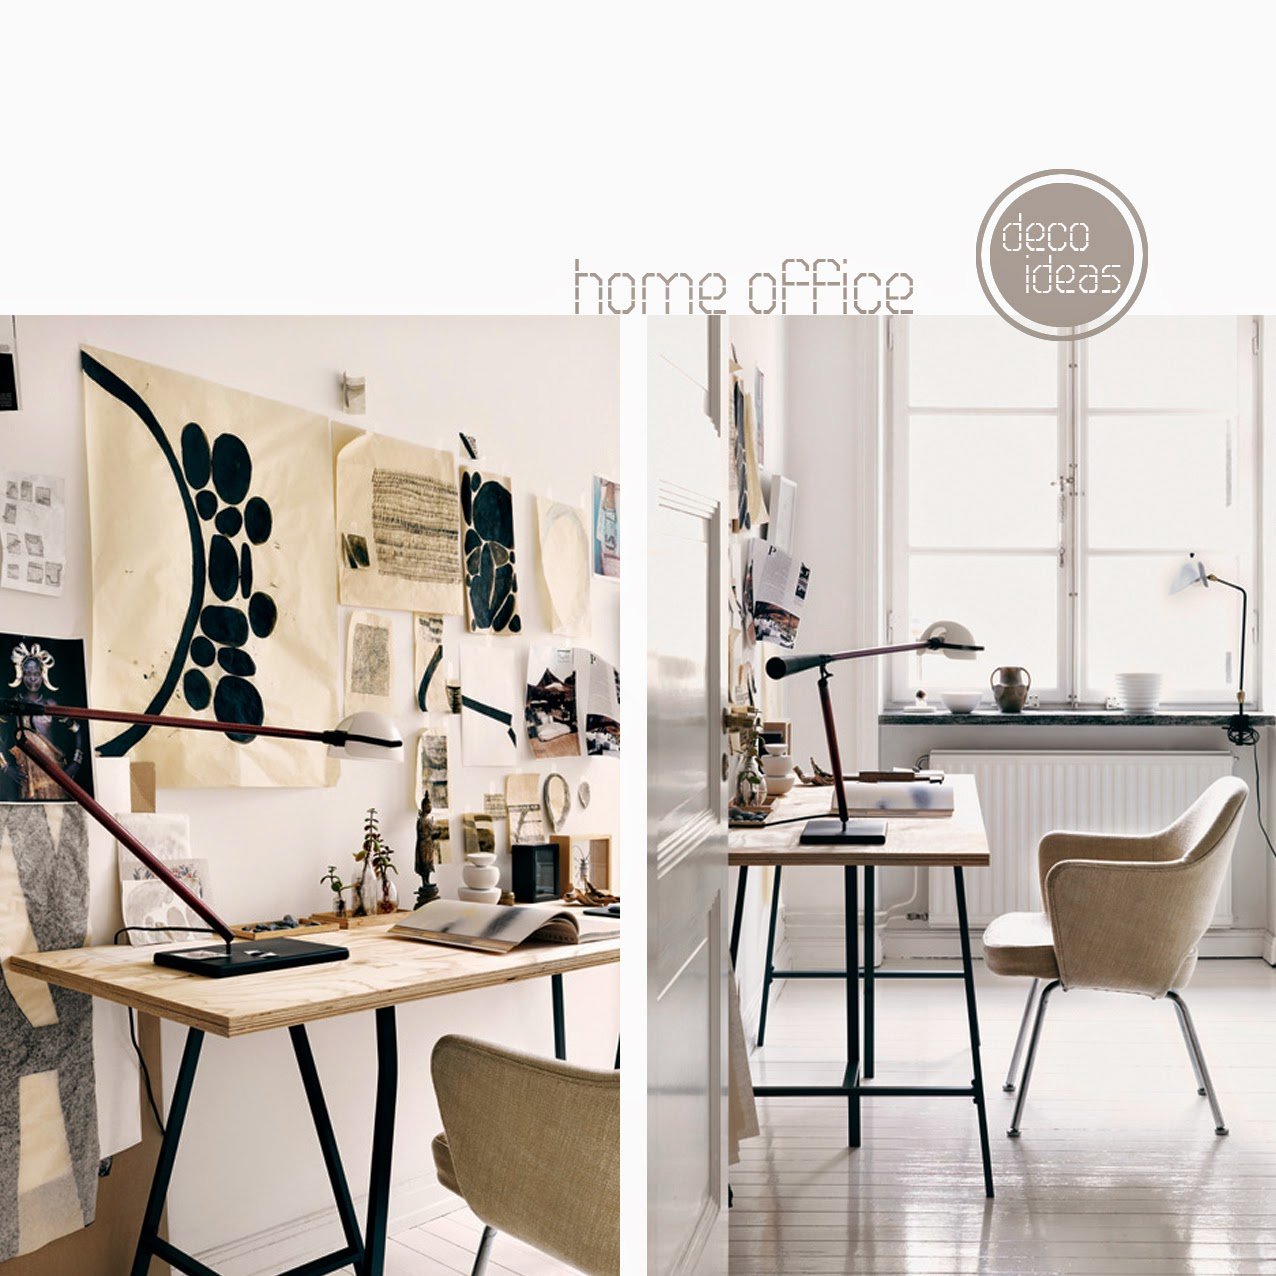 DECORATING . HOME OFFICE | the Round on on creative strategy, responsive html design, vintage retro wallpaper design, creative resume designs, creative posters, creative lighting, creative postcards, creative advertising, creative typography, htmltable data entry design,